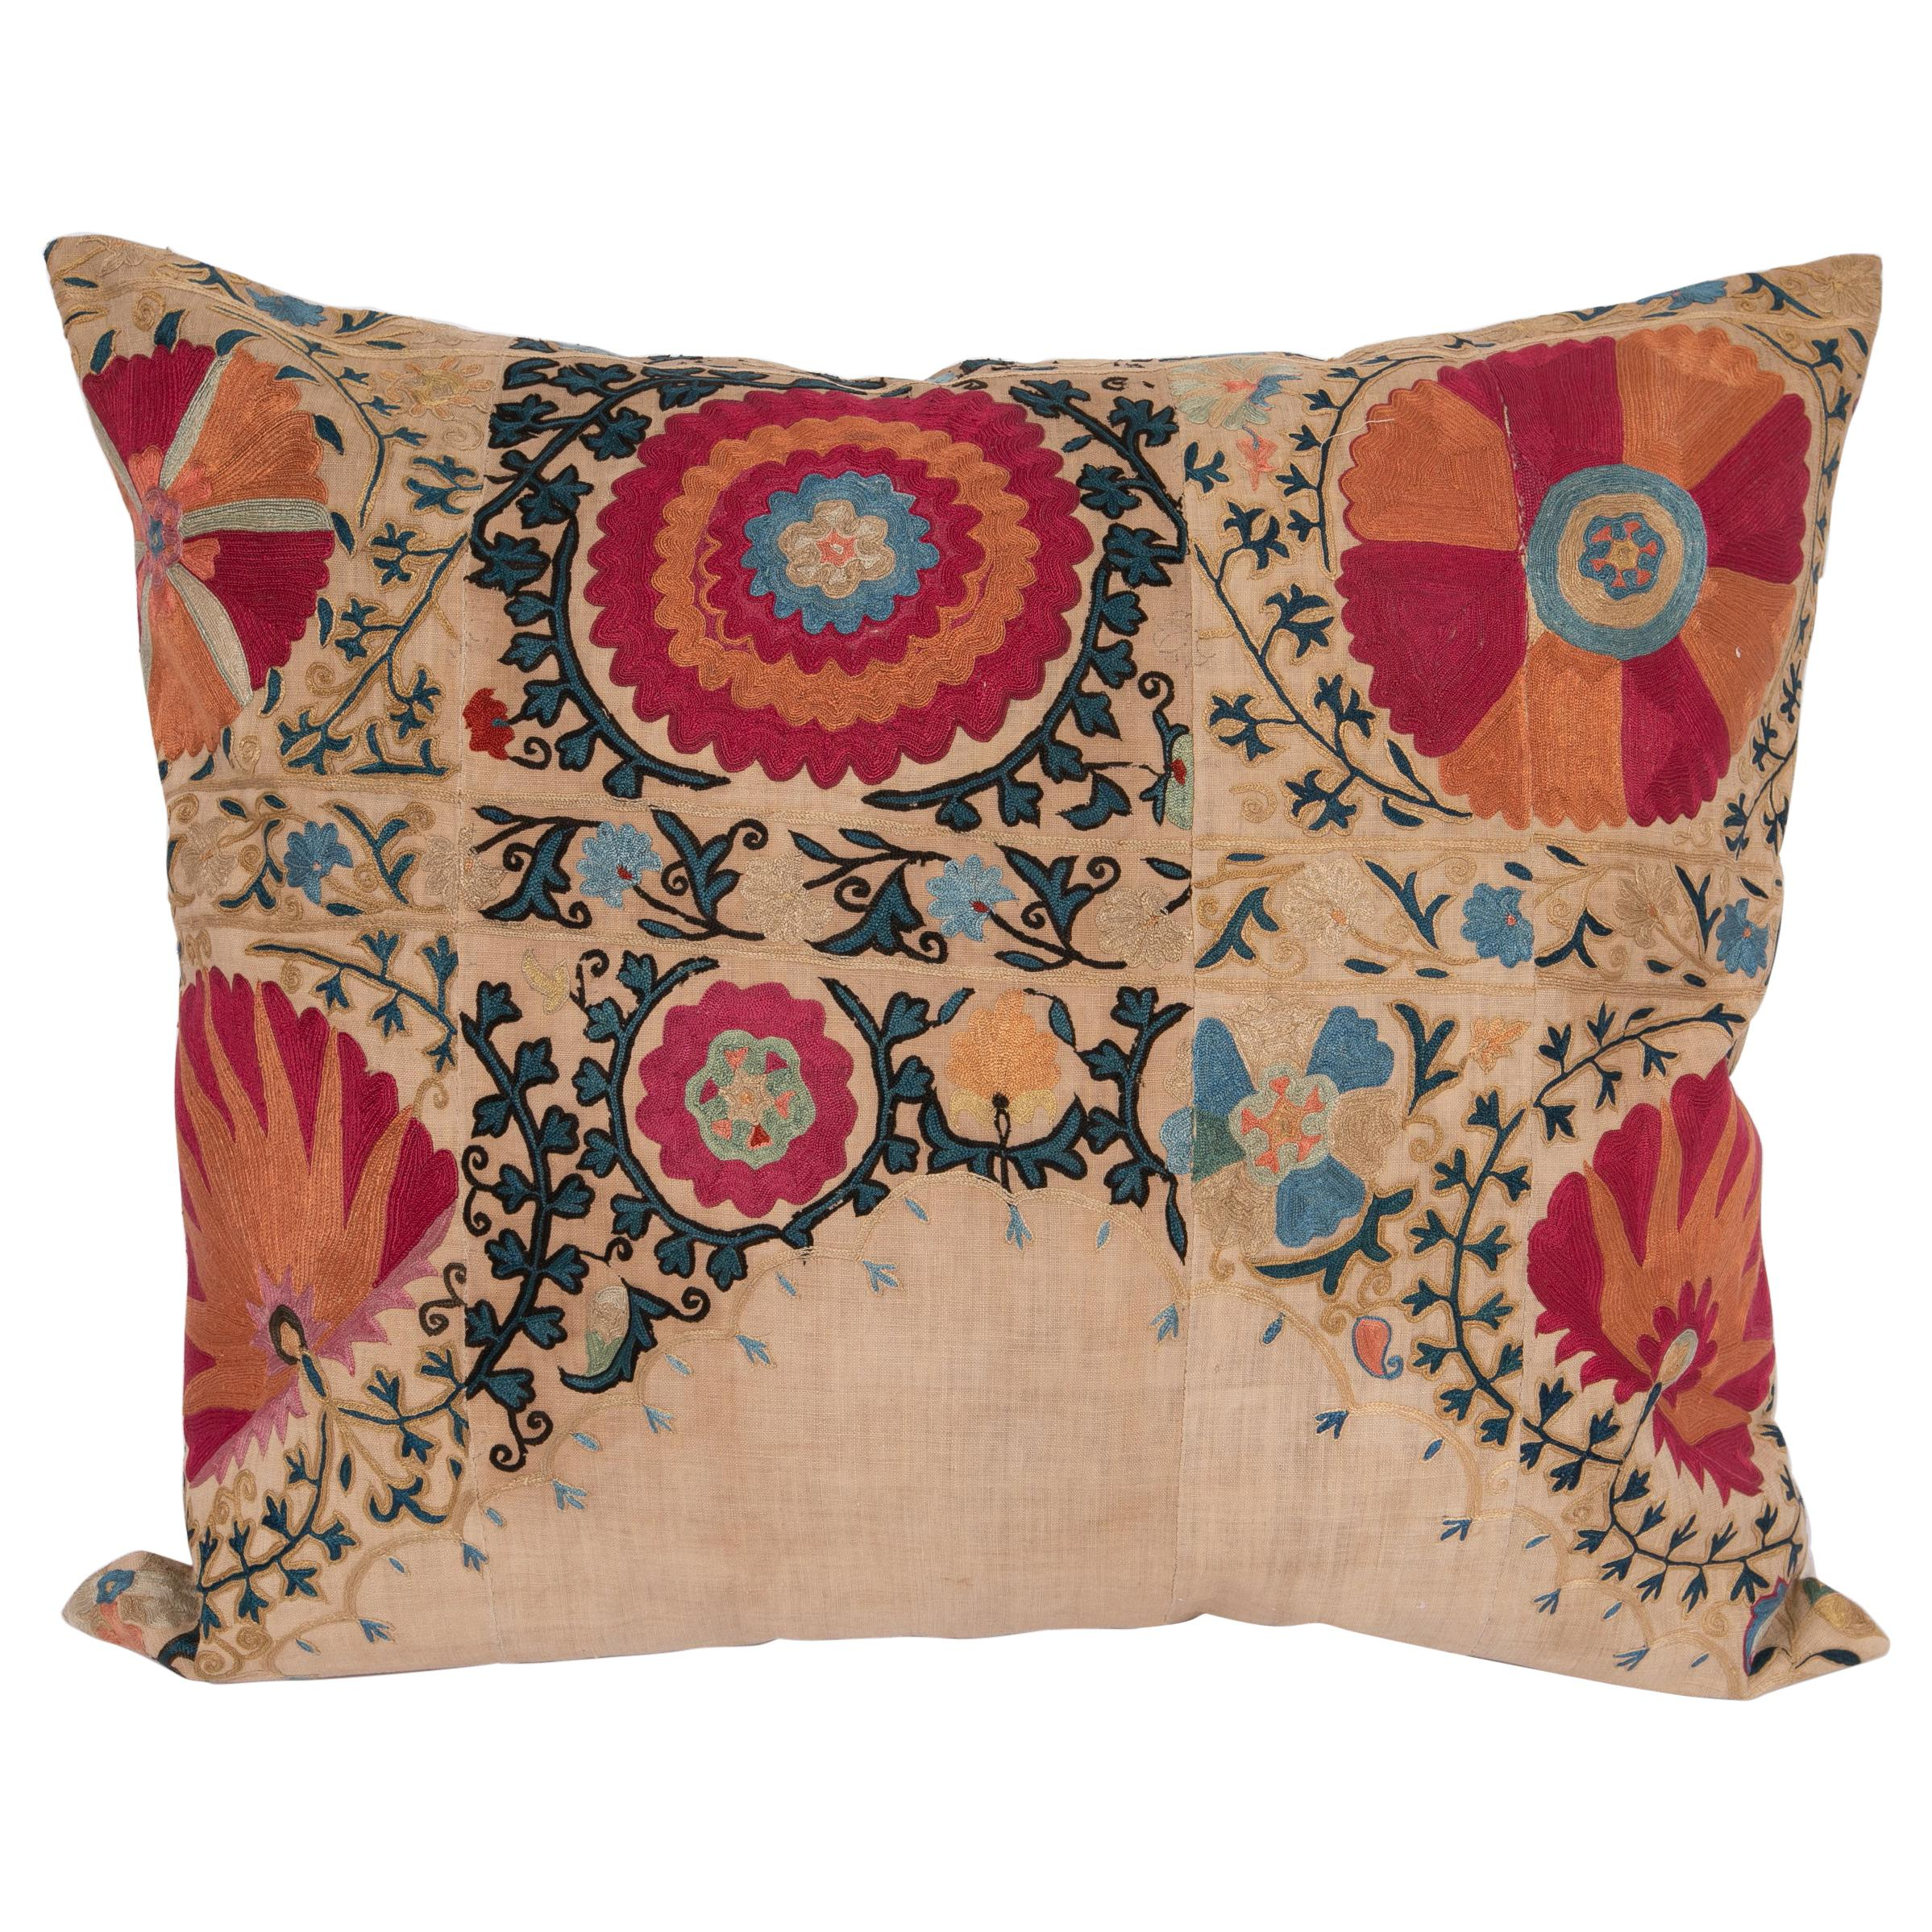 Antique Suzani Pillowcase / Cushion Cover Made from a Mid 19th C Suzani